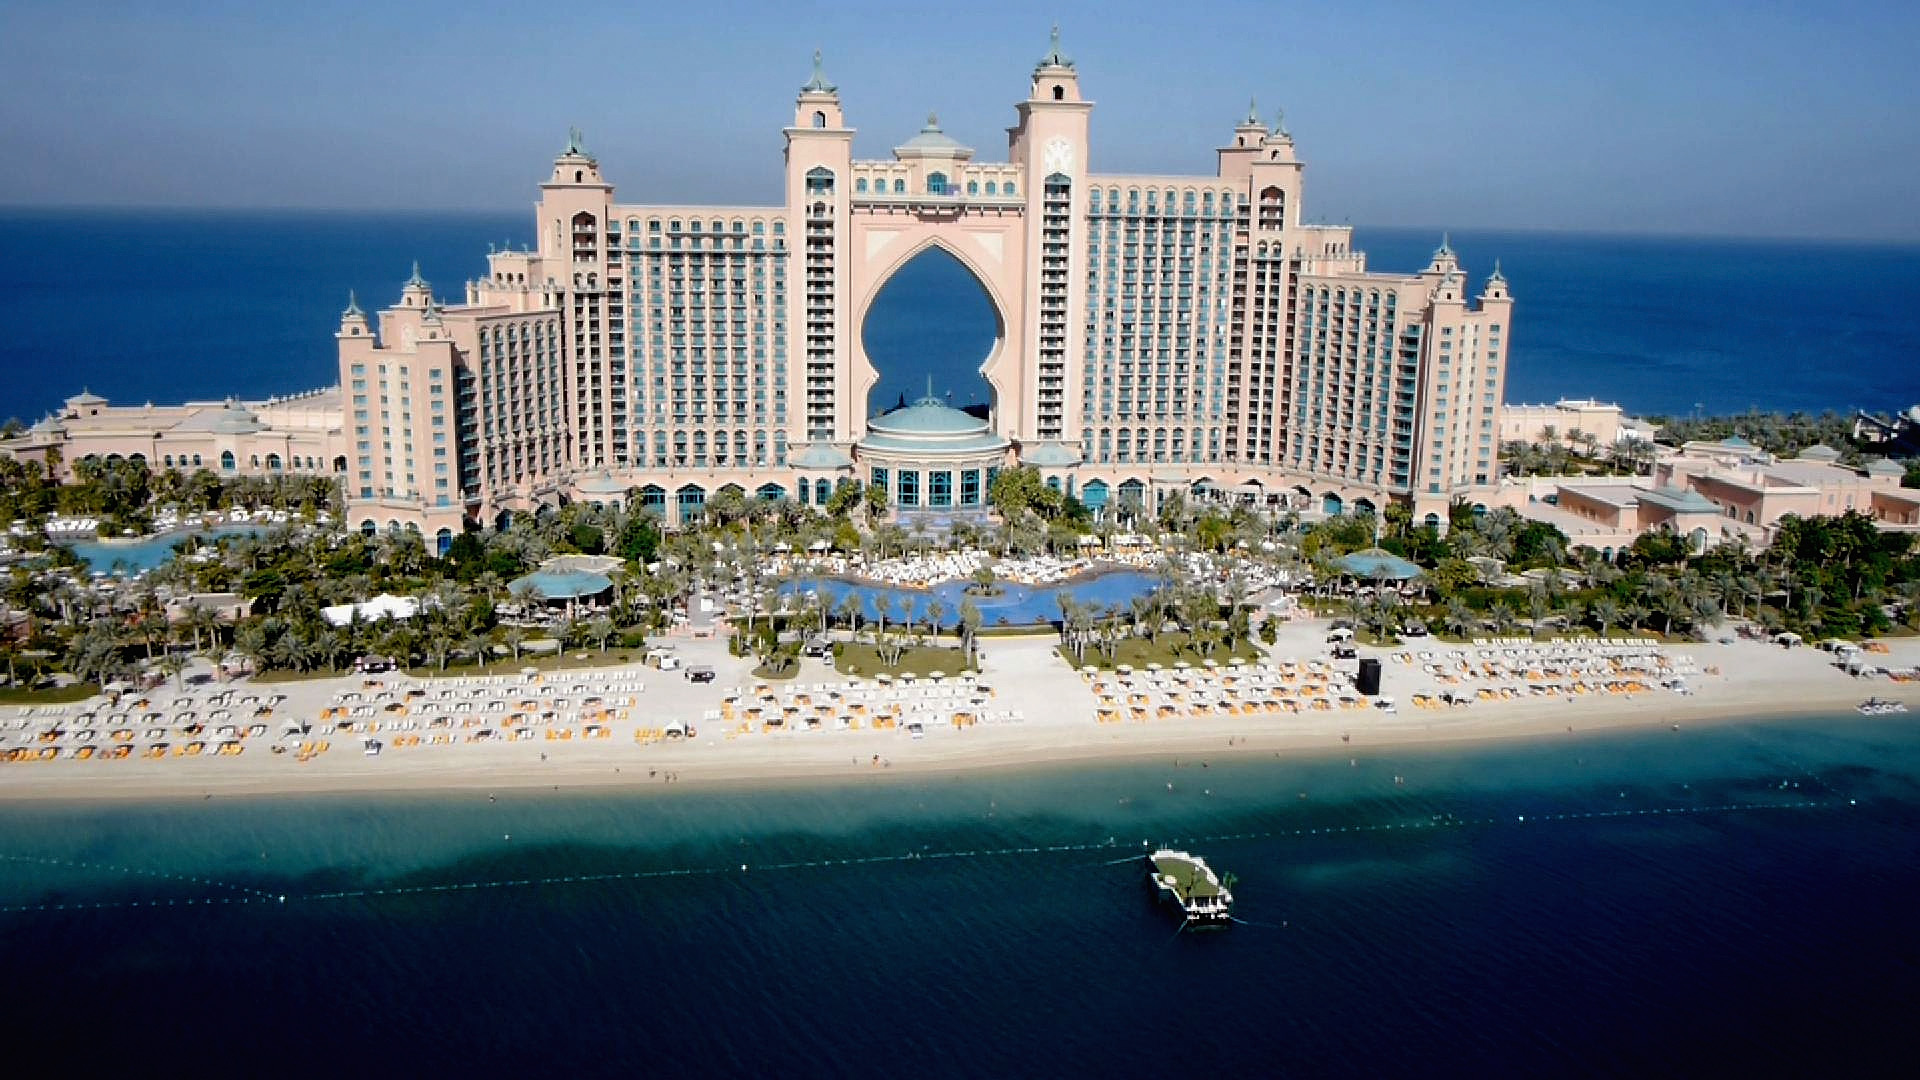 Players stay at the sumptuous Atlantis Hotel in Dubai (Photo: Getty Images)